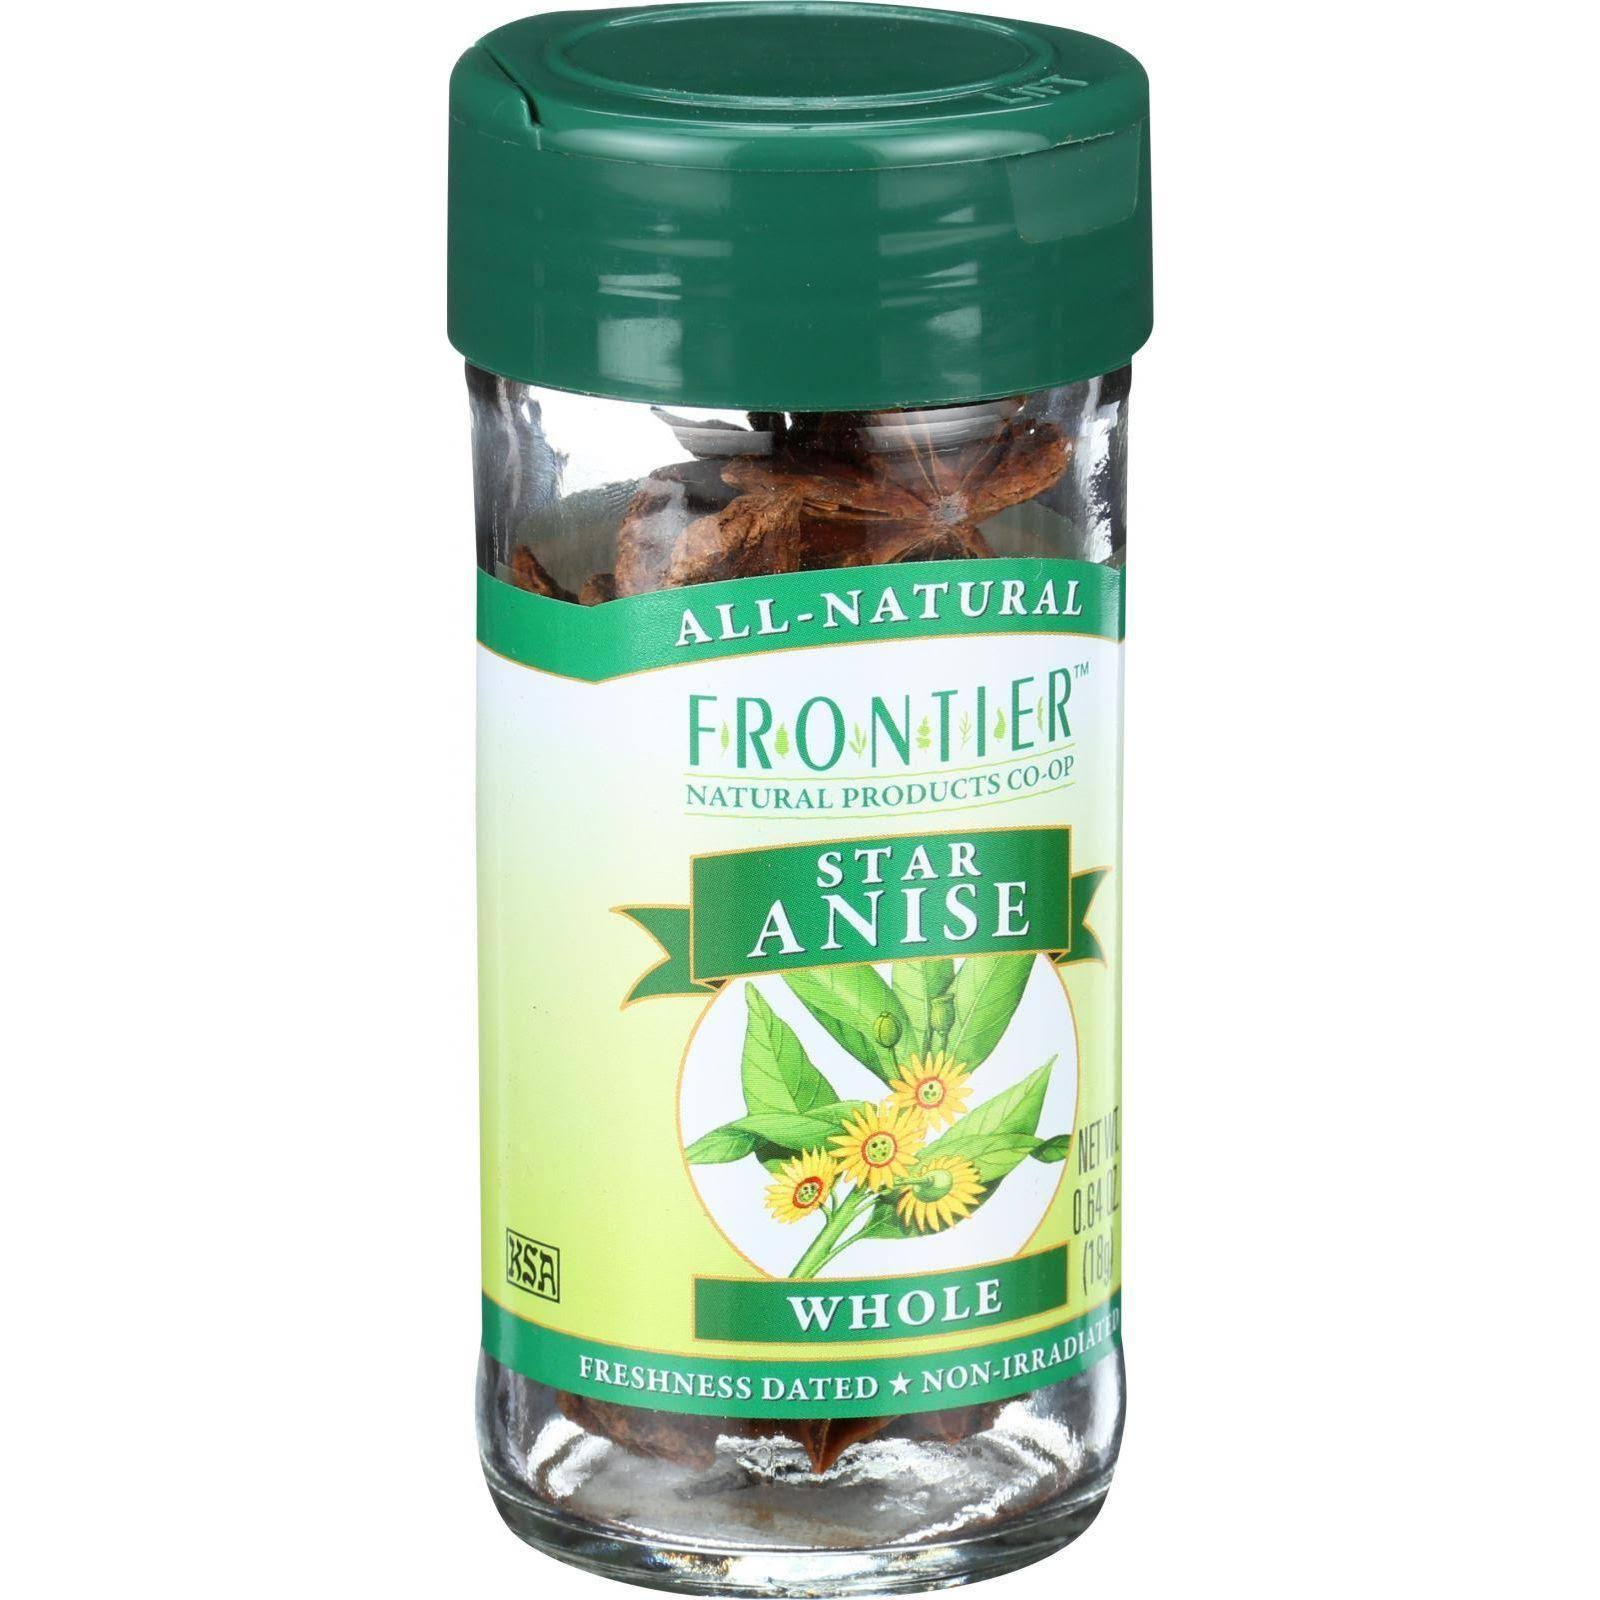 Frontier Select Whole Star Anise Spices